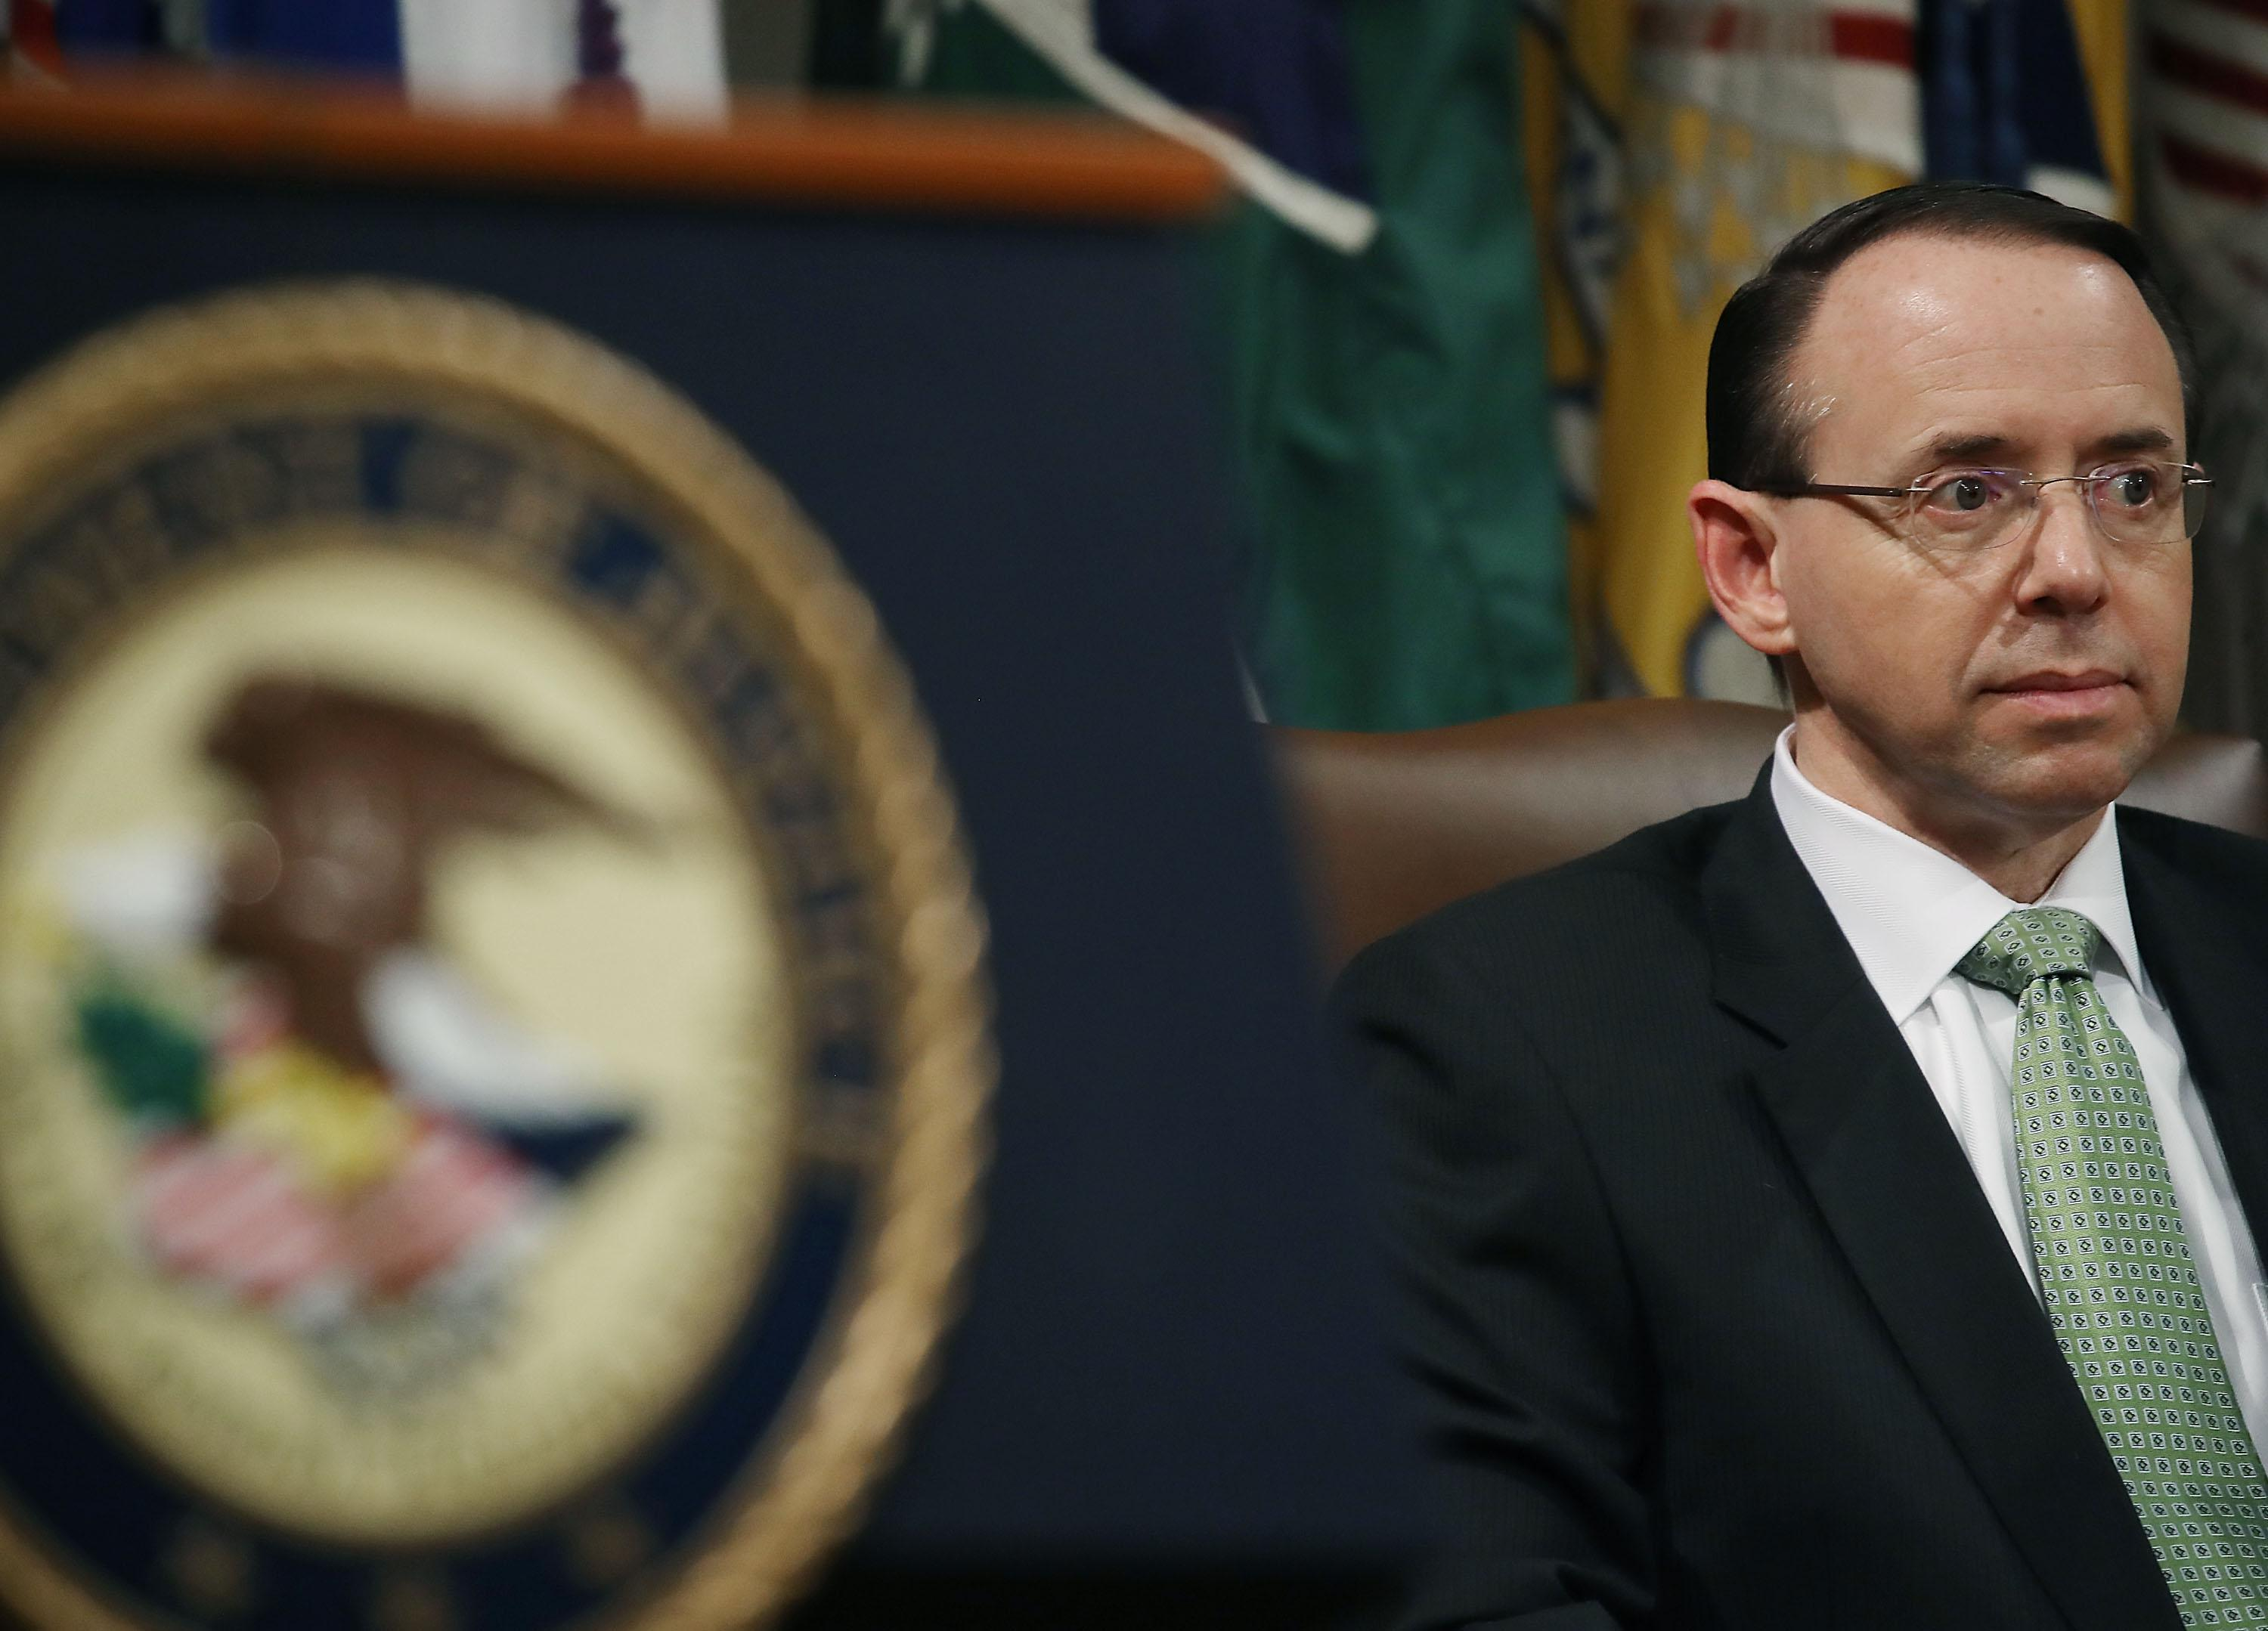 Deputy U.S. Attorney General, Rod Rosenstein participates in a summit to discuss efforts to combat human trafficking, at the Justice Department, on February 2, 2018 in Washington, DC.